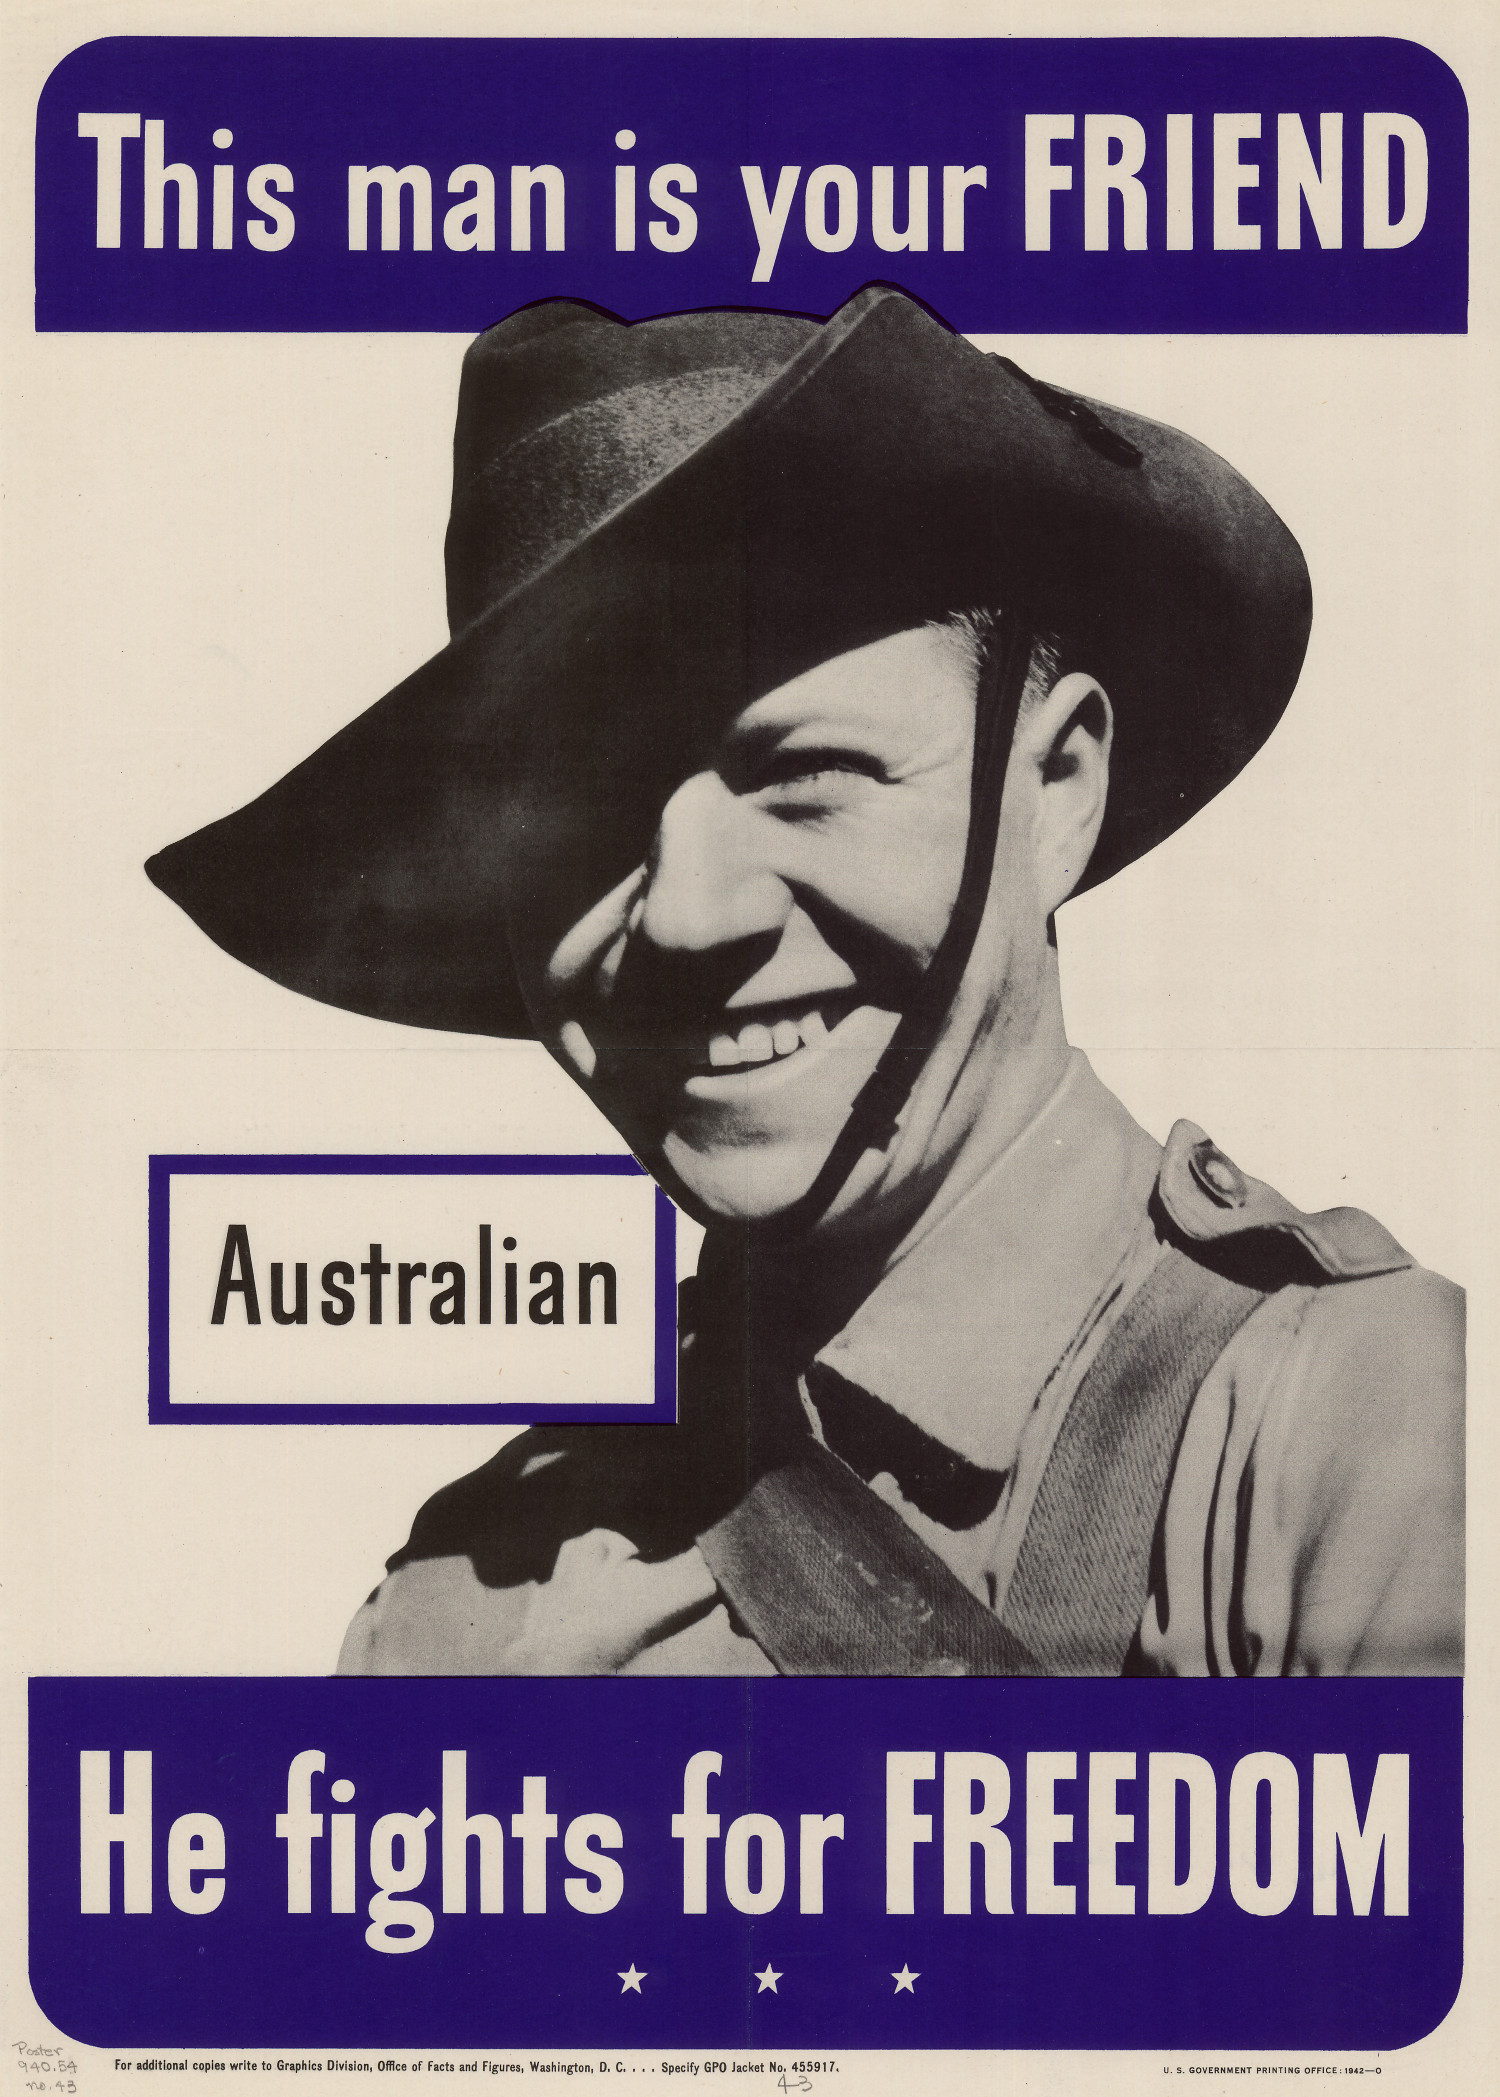 Patriotic_World_War_2_Poster_US_Allies_AustraliaLG.jpg